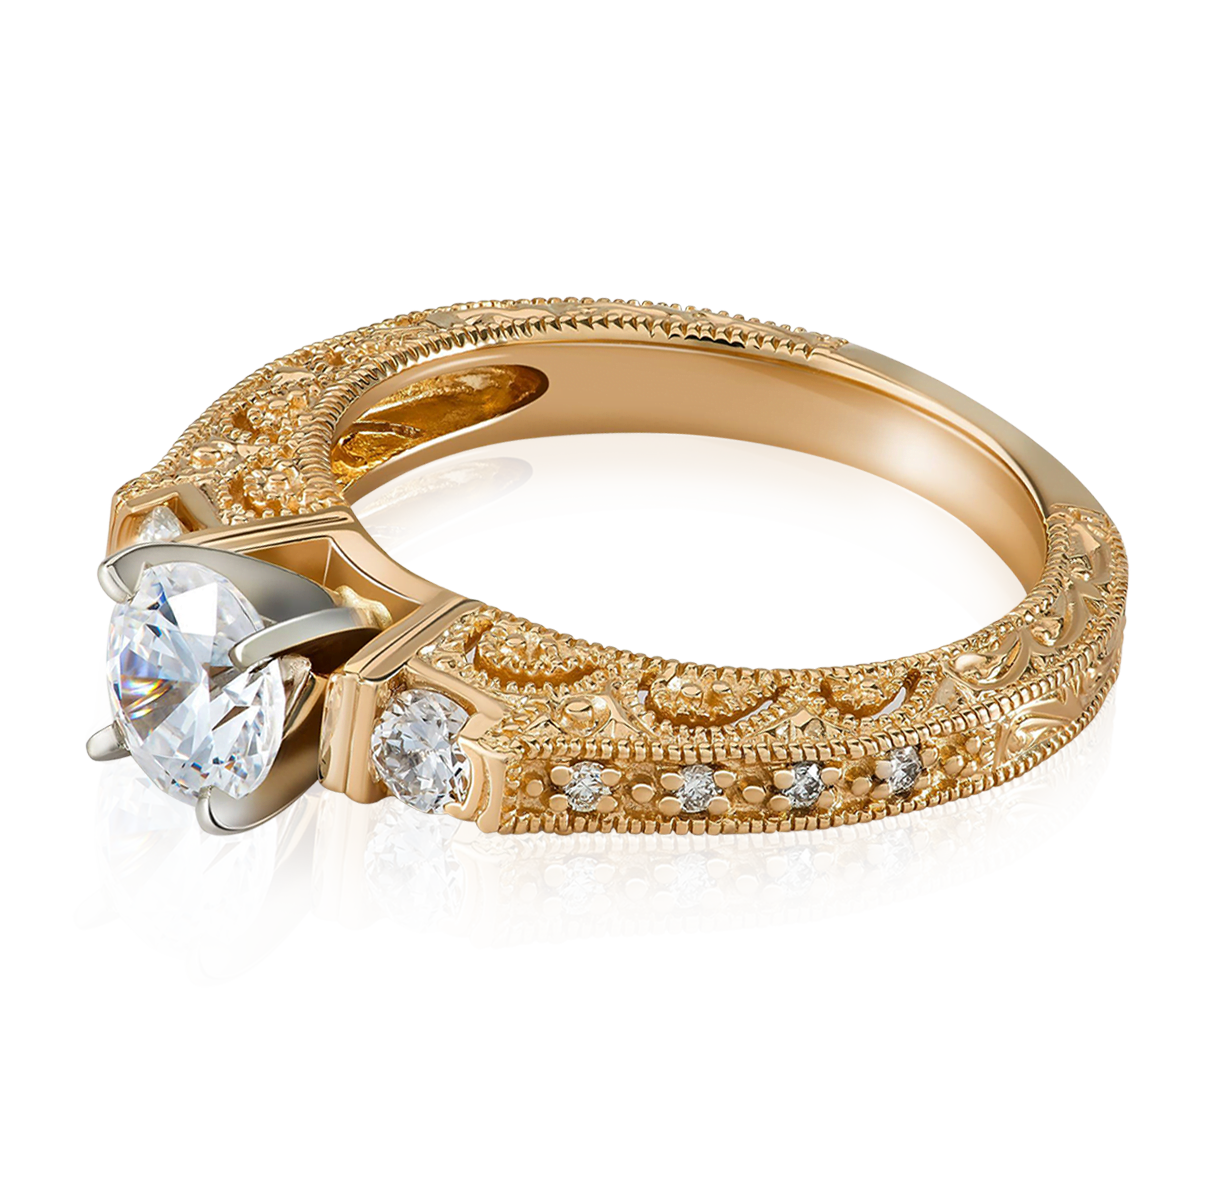 Beautiful intricate gold ring with center diamond photography